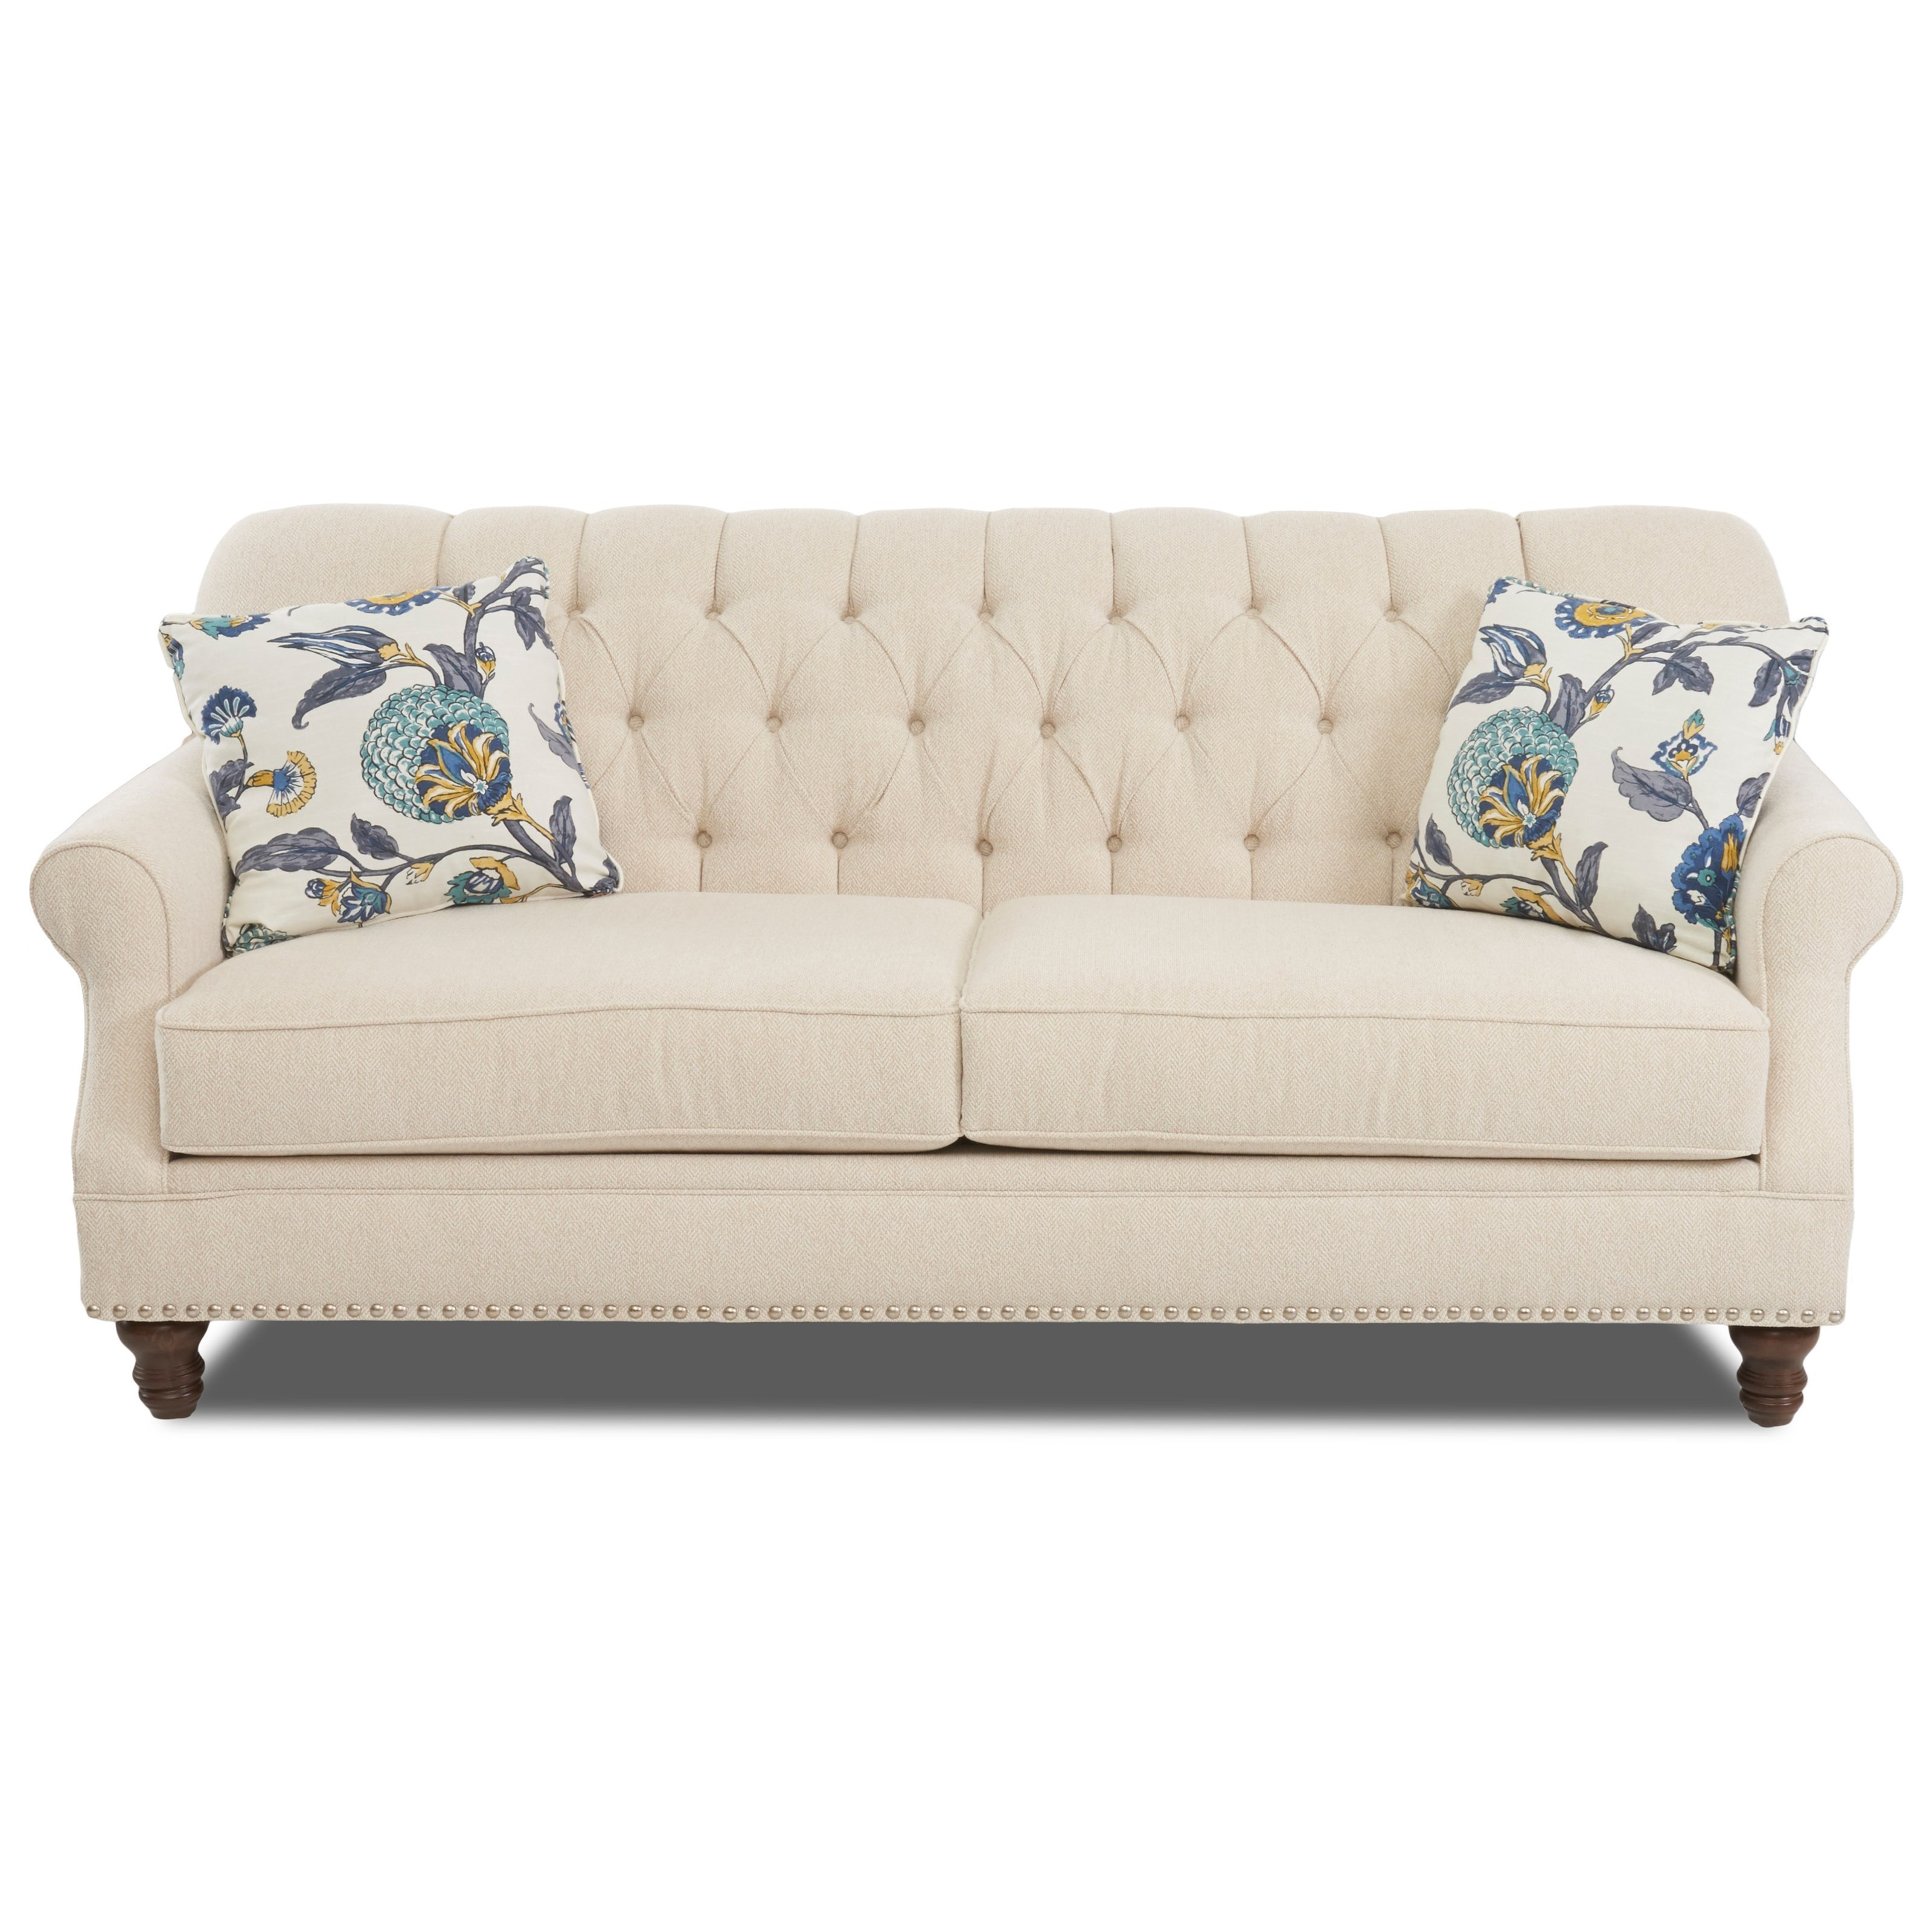 Klaussner Burbank Traditional Tufted Apartment Size Sofa With Nailheads